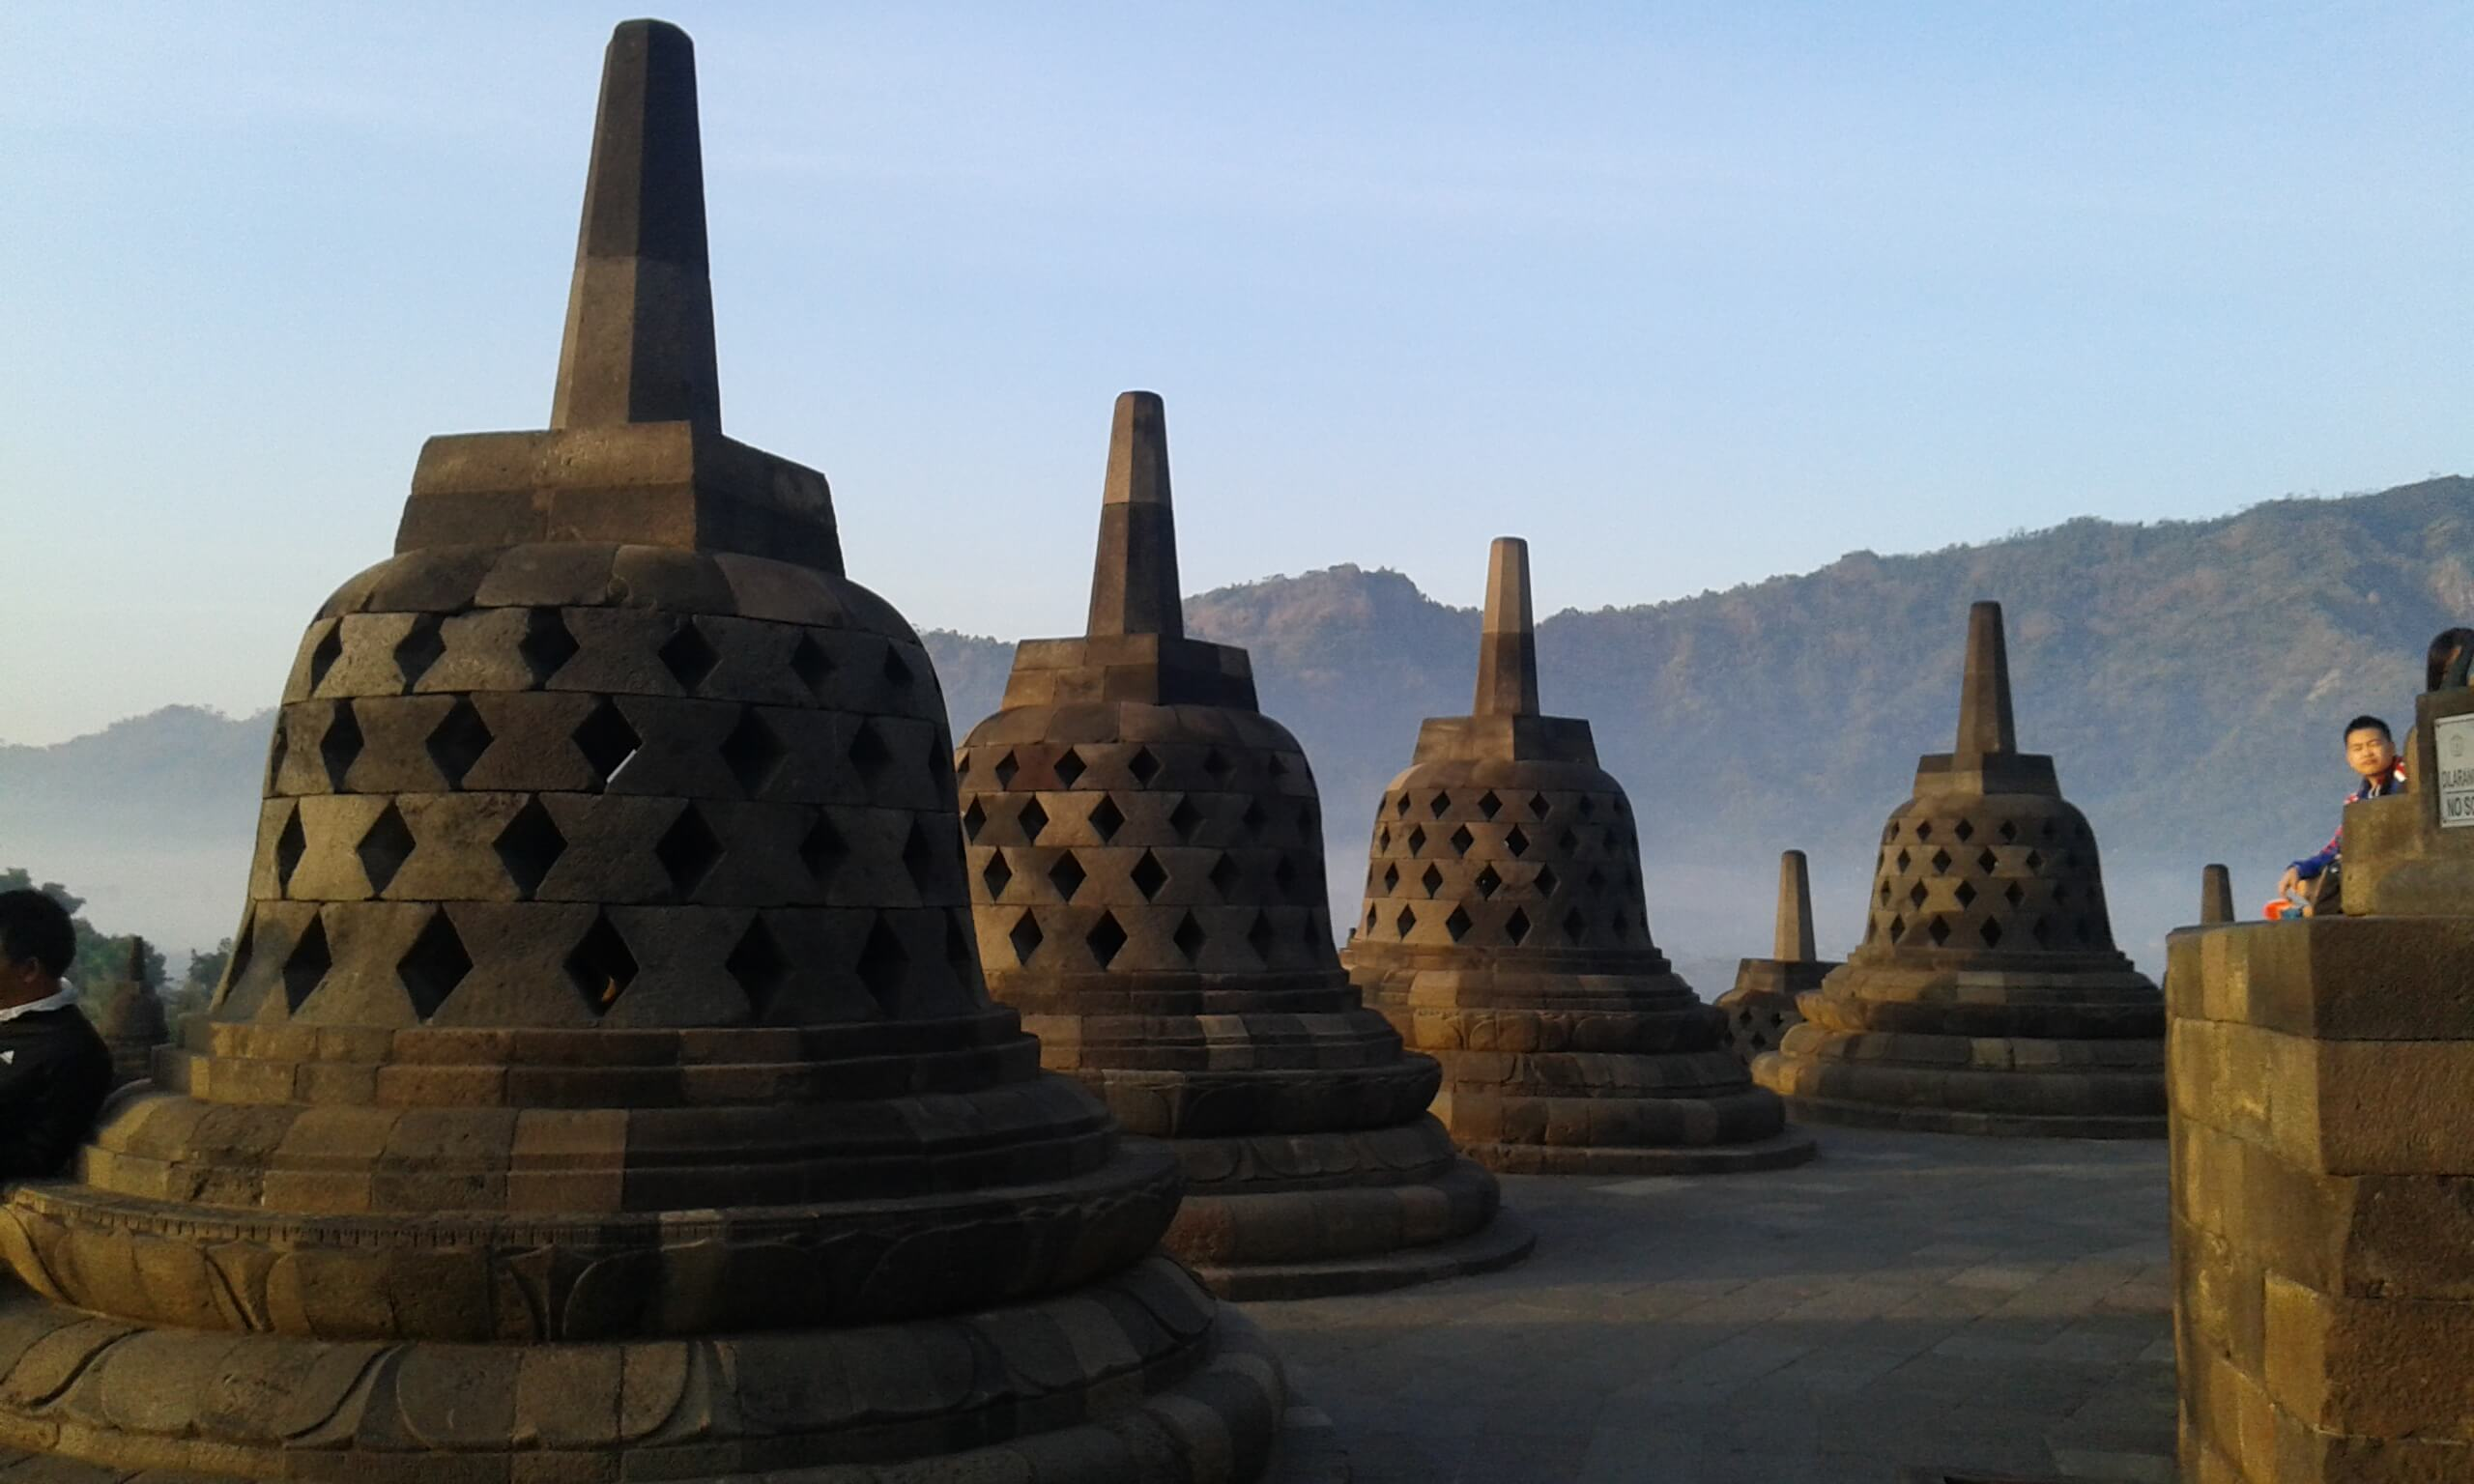 Stupa in Borobudur Temple